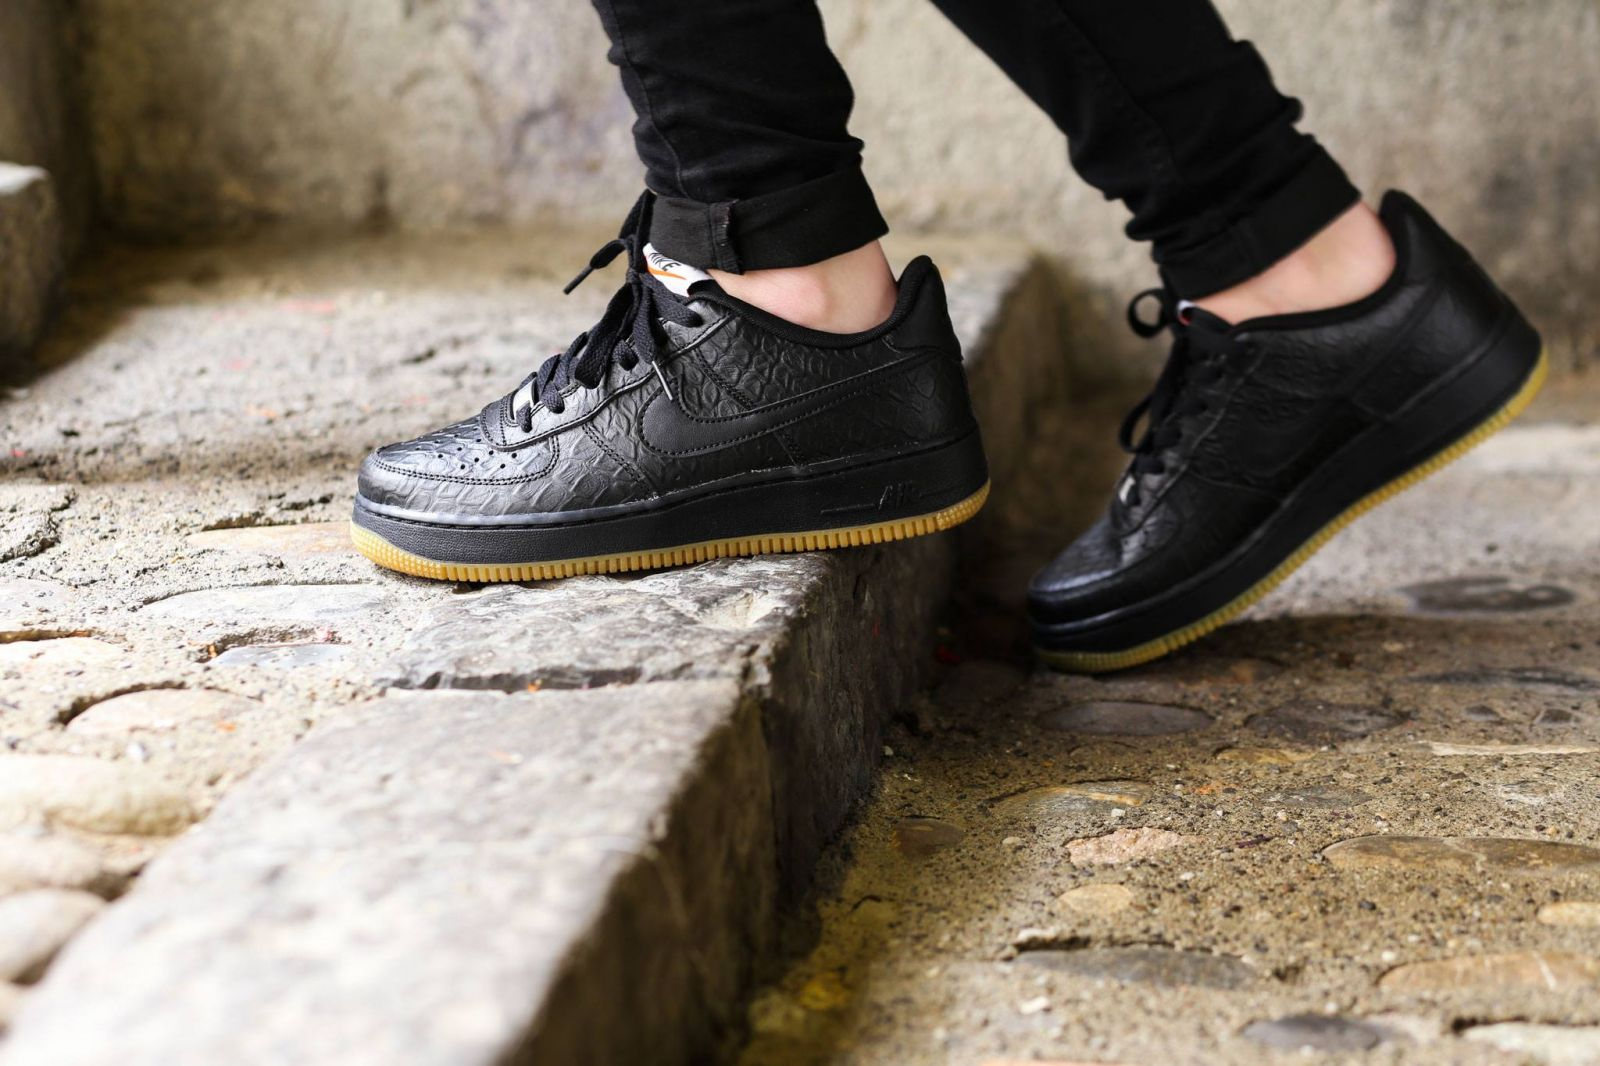 online retailer 57e87 5966f The black sheep from Nike s new Air Force 1 Low